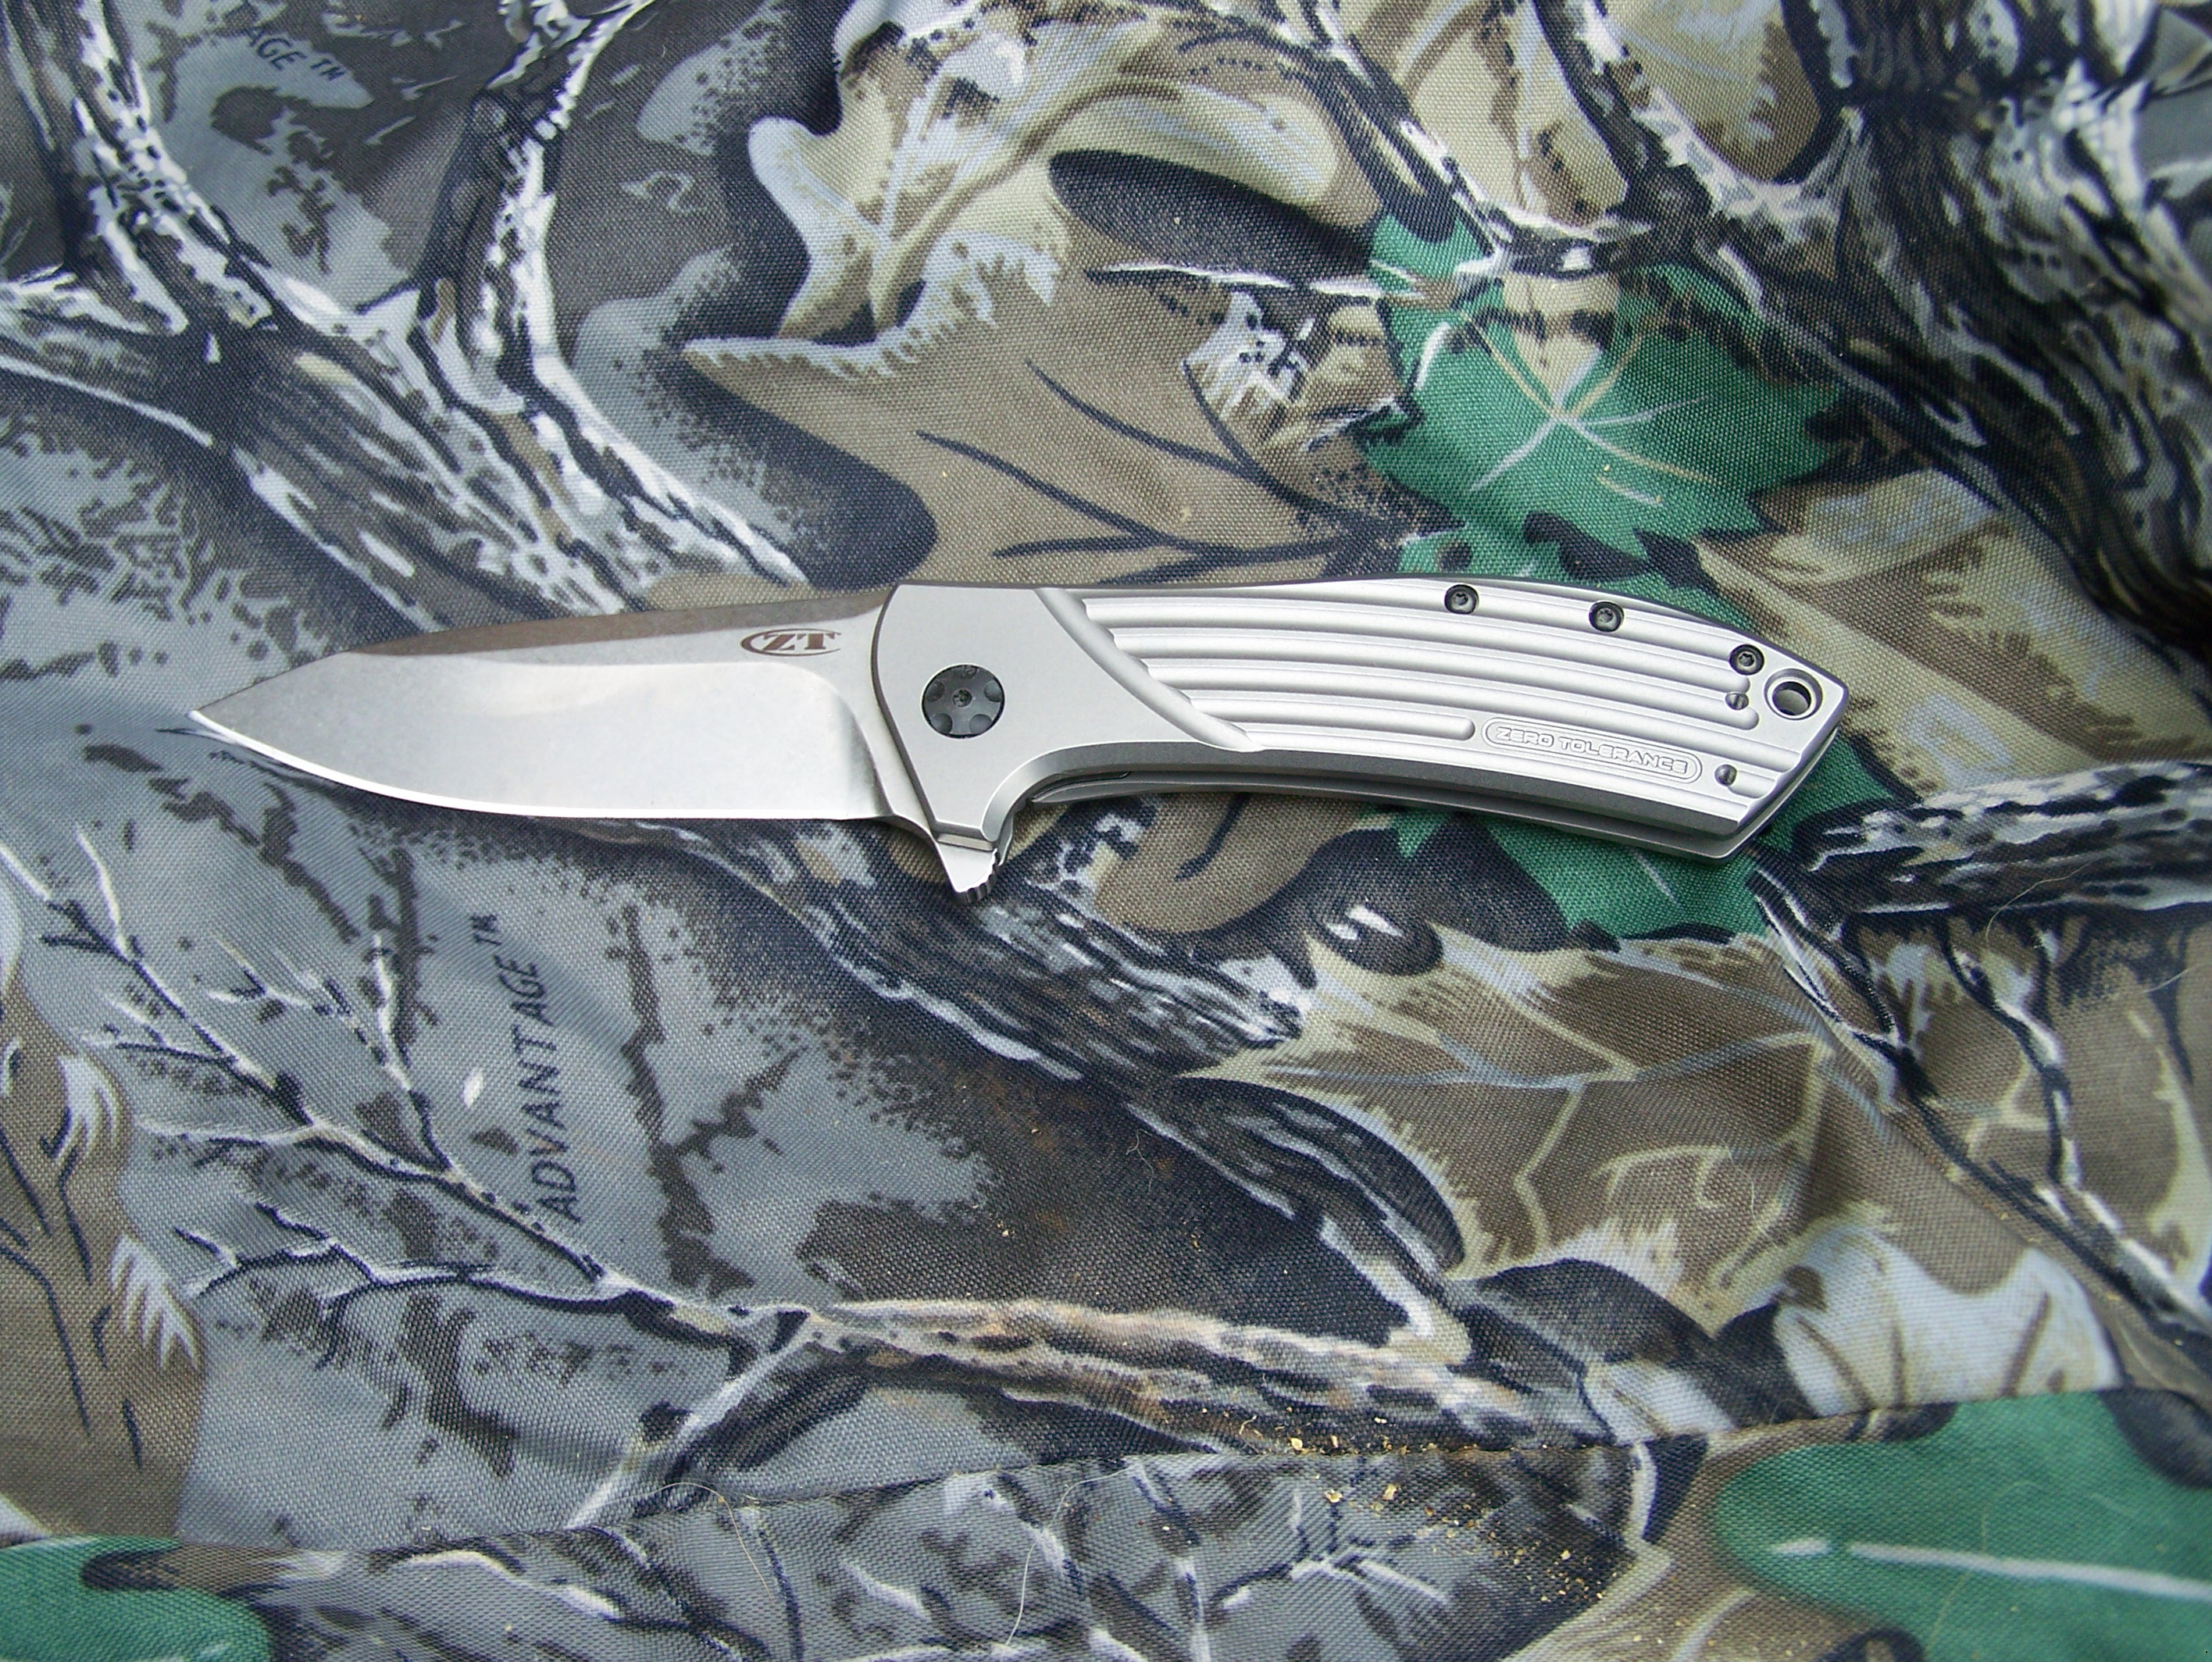 Review: Zero Tolerance Model 0801 Folding Titanium Tactical